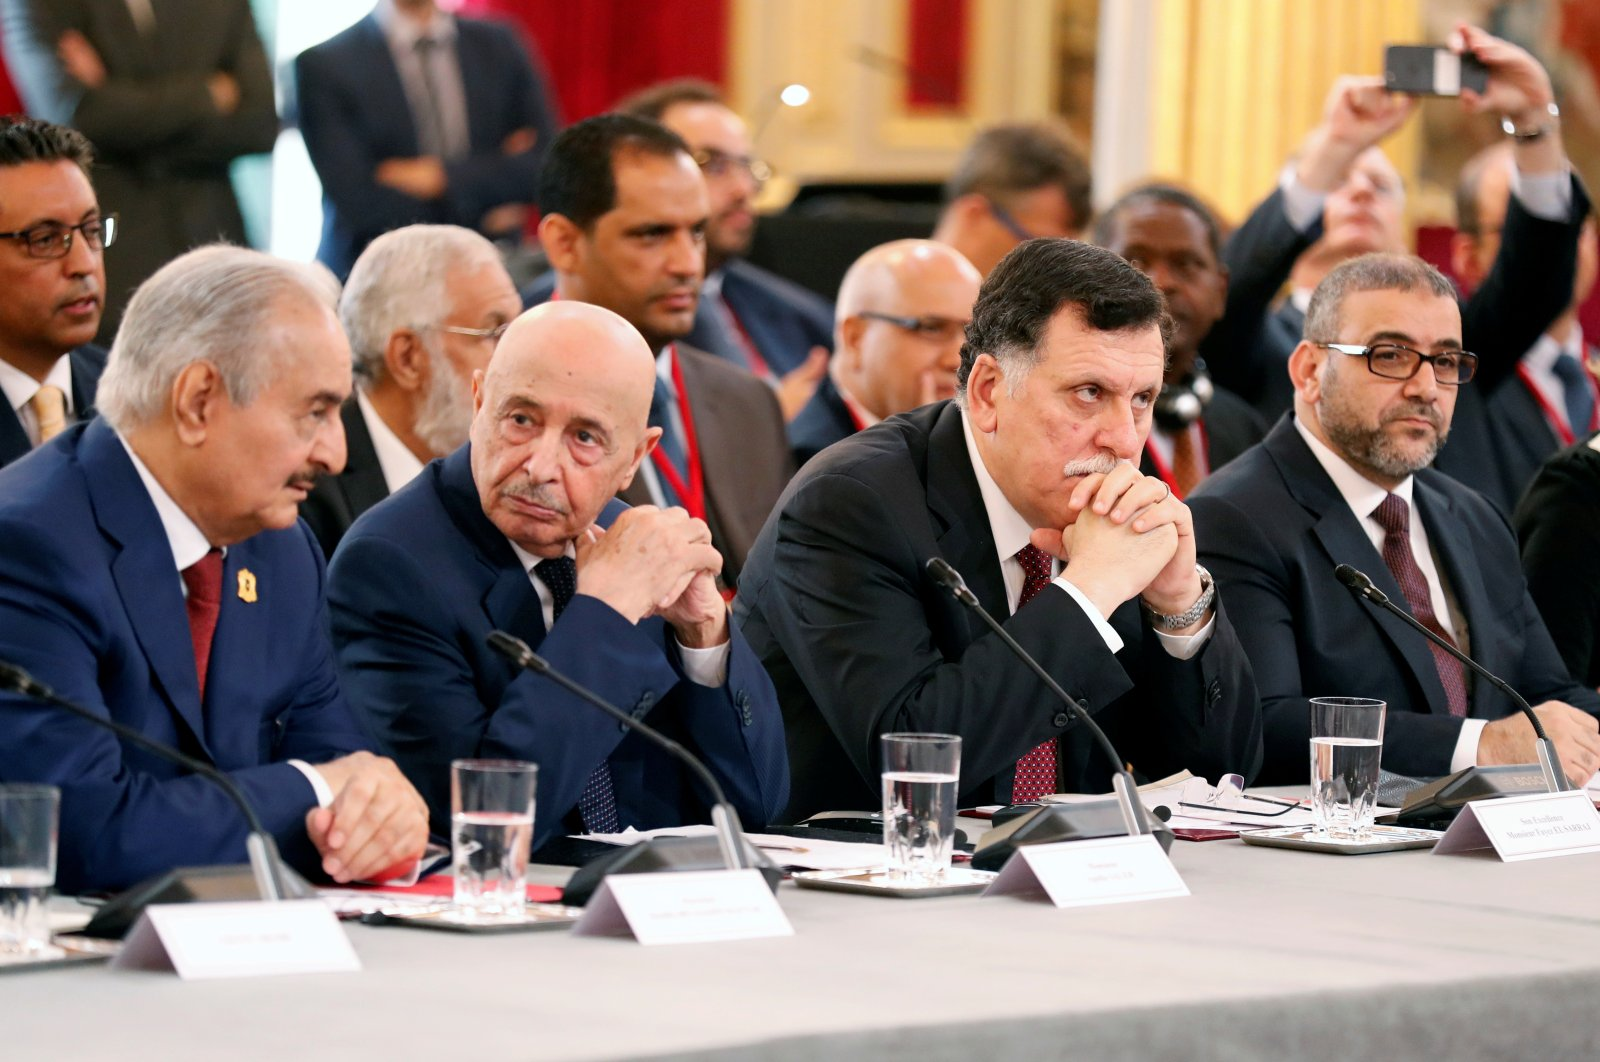 From left to right, Khalifa Haftar, the Libyan warlord, Aguila Saleh Issa, president of the eastern Libyan House of Representatives, Libyan Prime Minister Fayez al-Sarraj and Khaled Al-Mishri, president of Libya High Council of State, during an international conference on Libya at the Elysee Palace in Paris, France, May 29, 2018. (Reuters Photo)